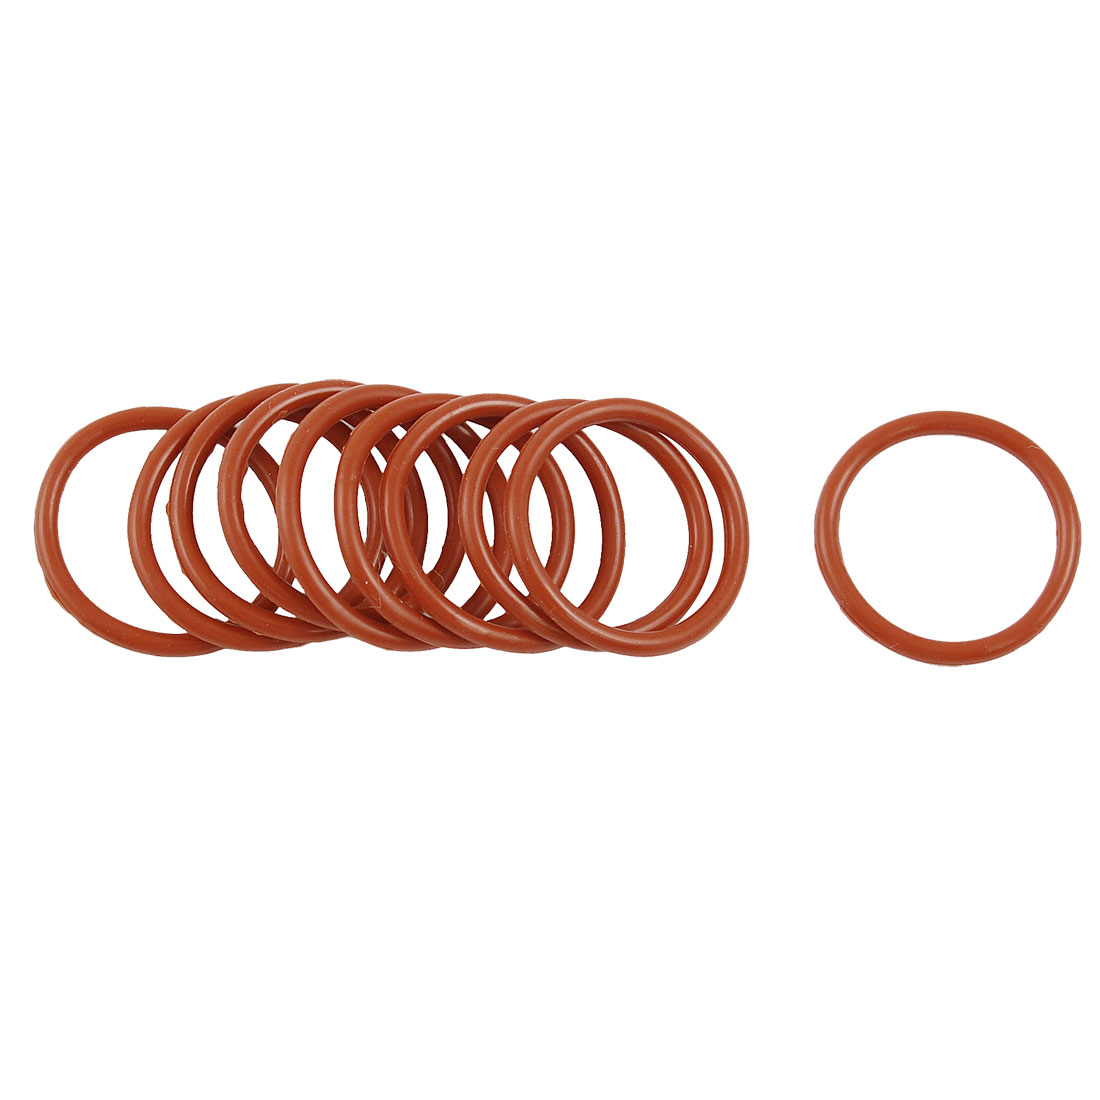 10 Pcs 22mm OD 2mm Thickness Dark Red Silicone O Rings Oil Seals Gasket